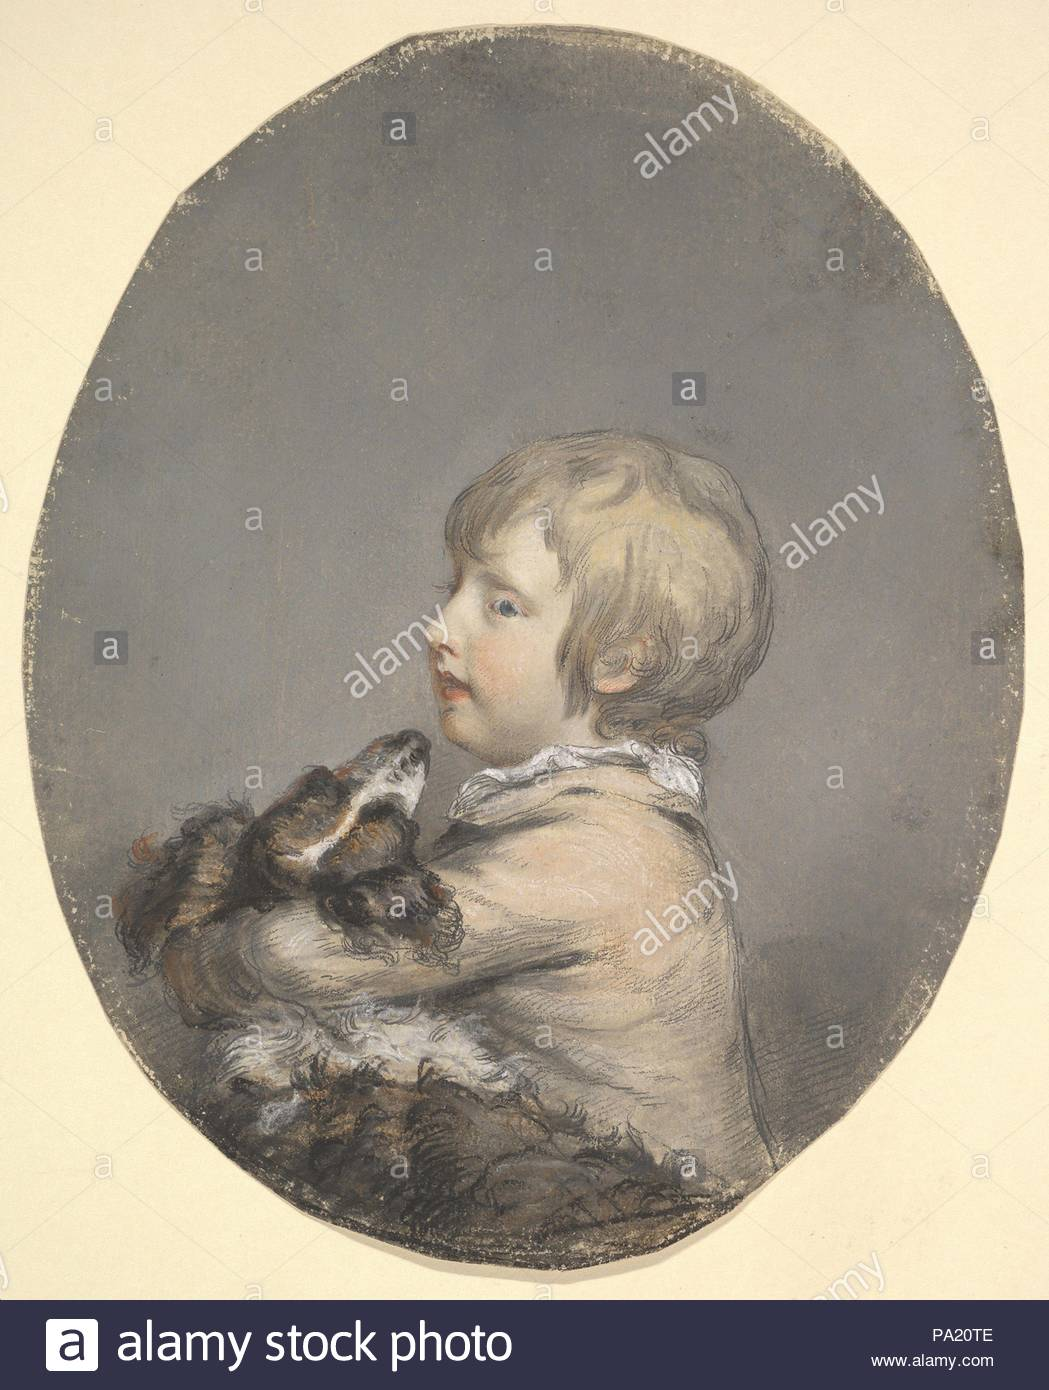 William Evelyn of St Clere, Kent, Holding a Spaniel, ca. 1768–89, Pastel, Sheet: 10 1/2 x 8 3/8 in. (26.7 x 21.3 cm), Drawings, Hugh Douglas Hamilton (Irish, Dublin 1739–1808 Dublin), Hamilton belonged to a group of accomplished pastellists trained at the Dublin Society School of Drawing, run by Robert West (ca. 1720–1790) and James Mannin (active 1746–79). The artist moved to London around 1764 and worked from a Pall Mall address in London's fashionable West End. - Stock Image